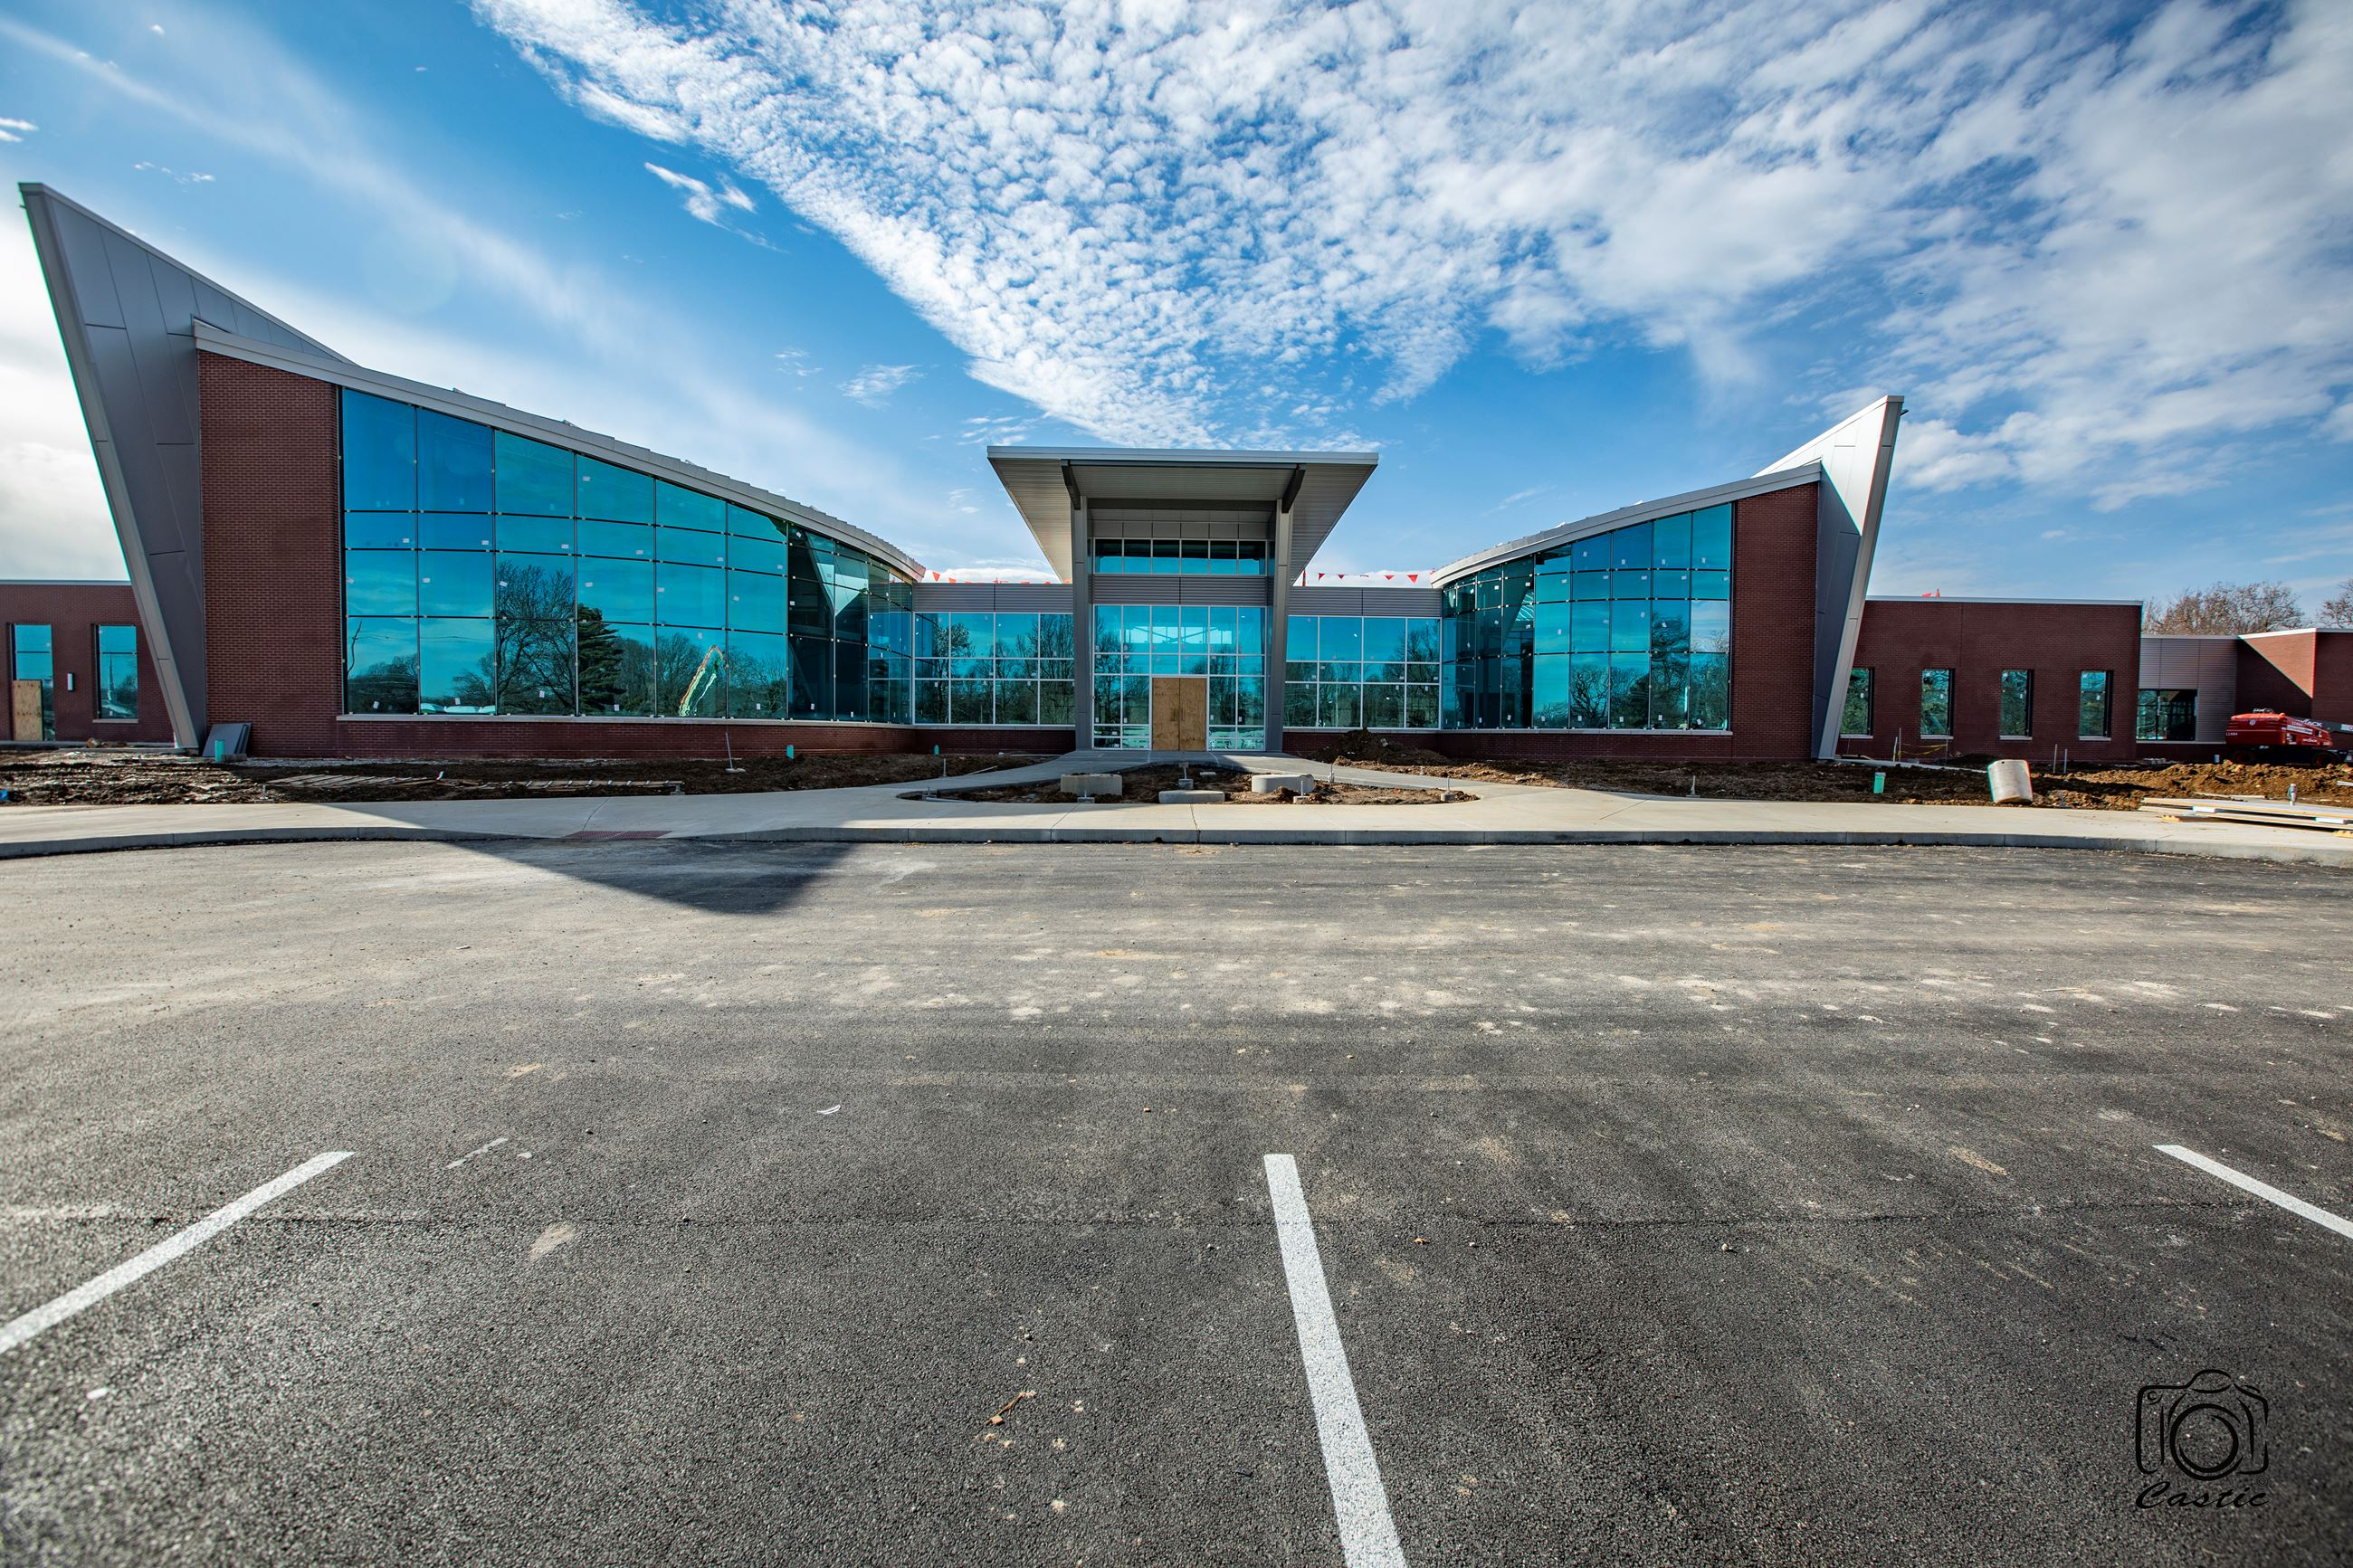 Fairview Heights Il >> Fairview Heights Rec Center Fairview Heights Il